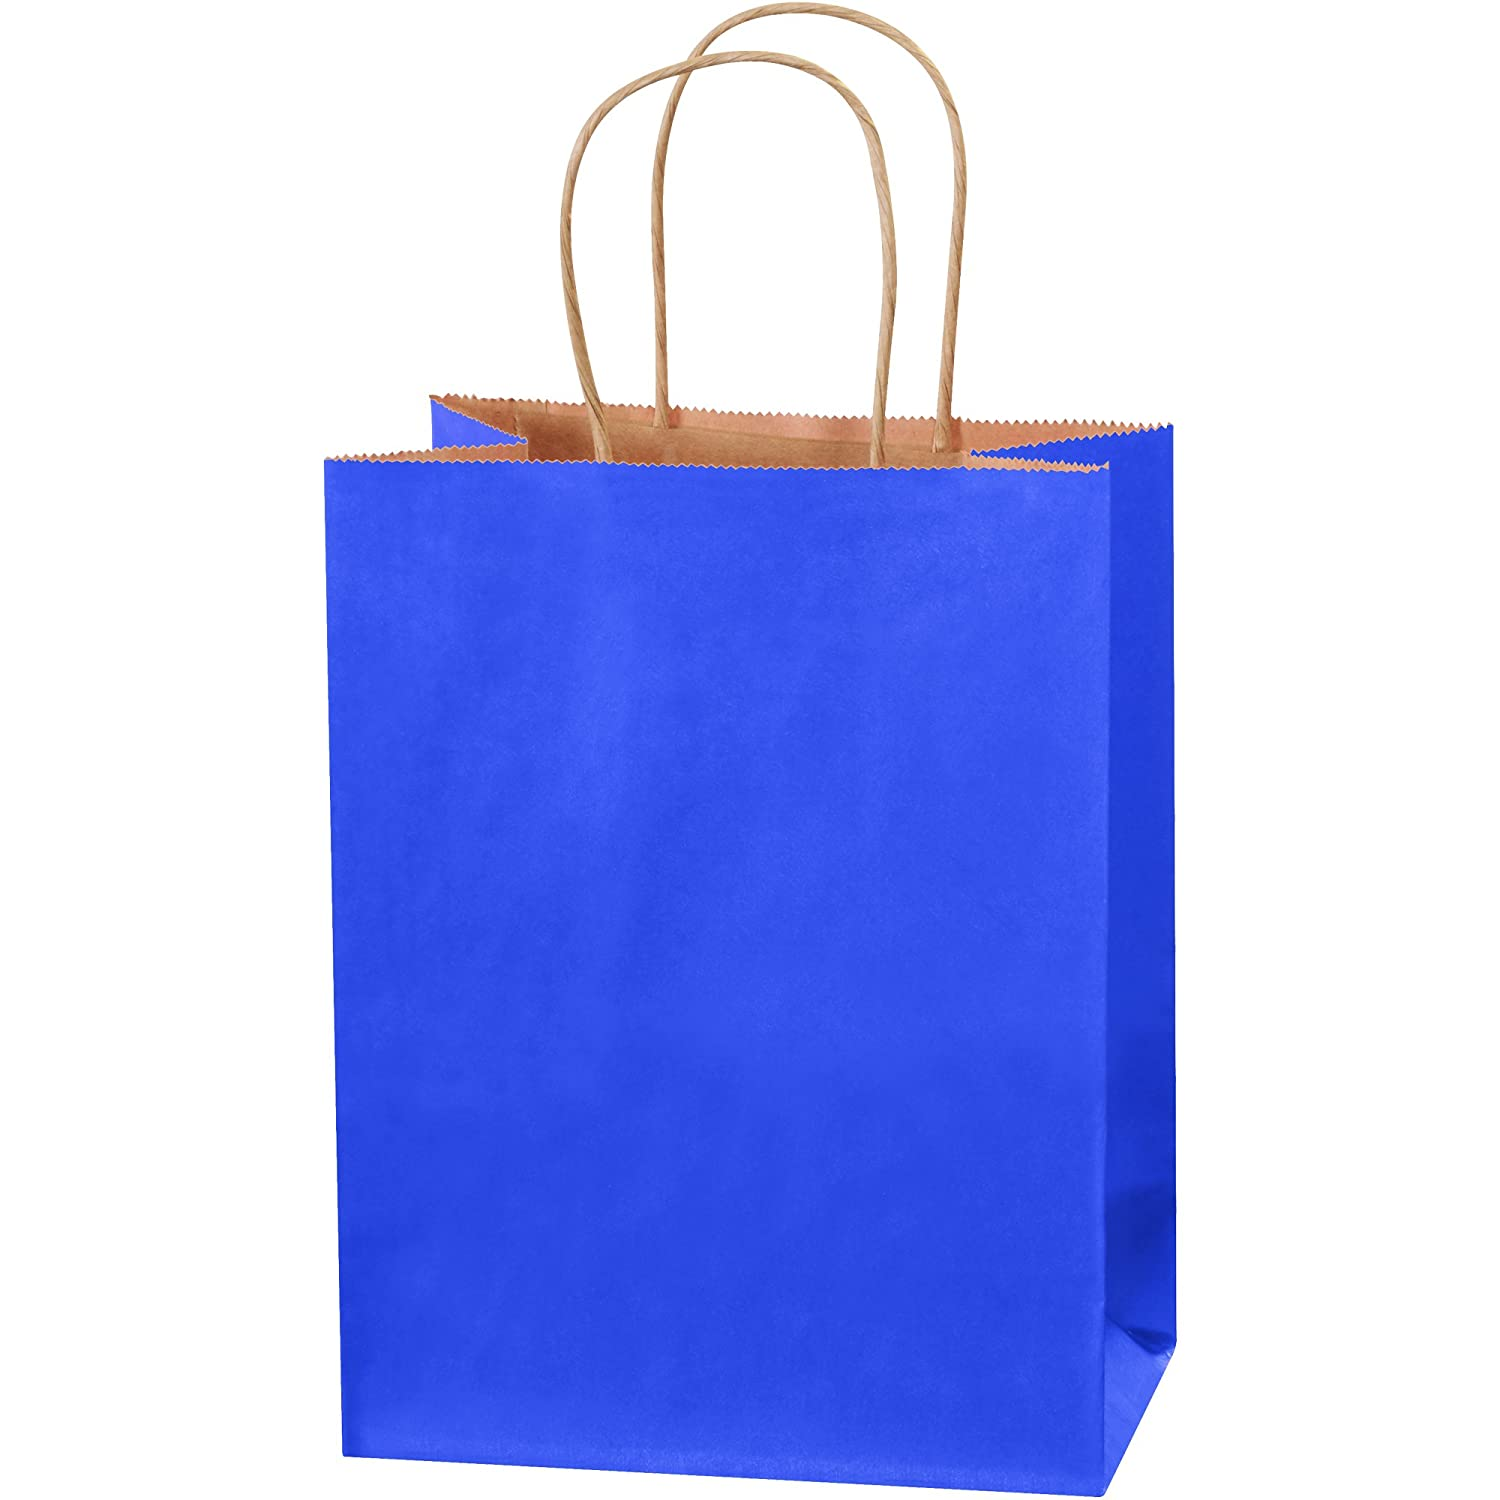 Ultra-Cheap Deals Ship Now Supply SNBGS103PB Tinted Height Bags Shopping x Popular products 10.25